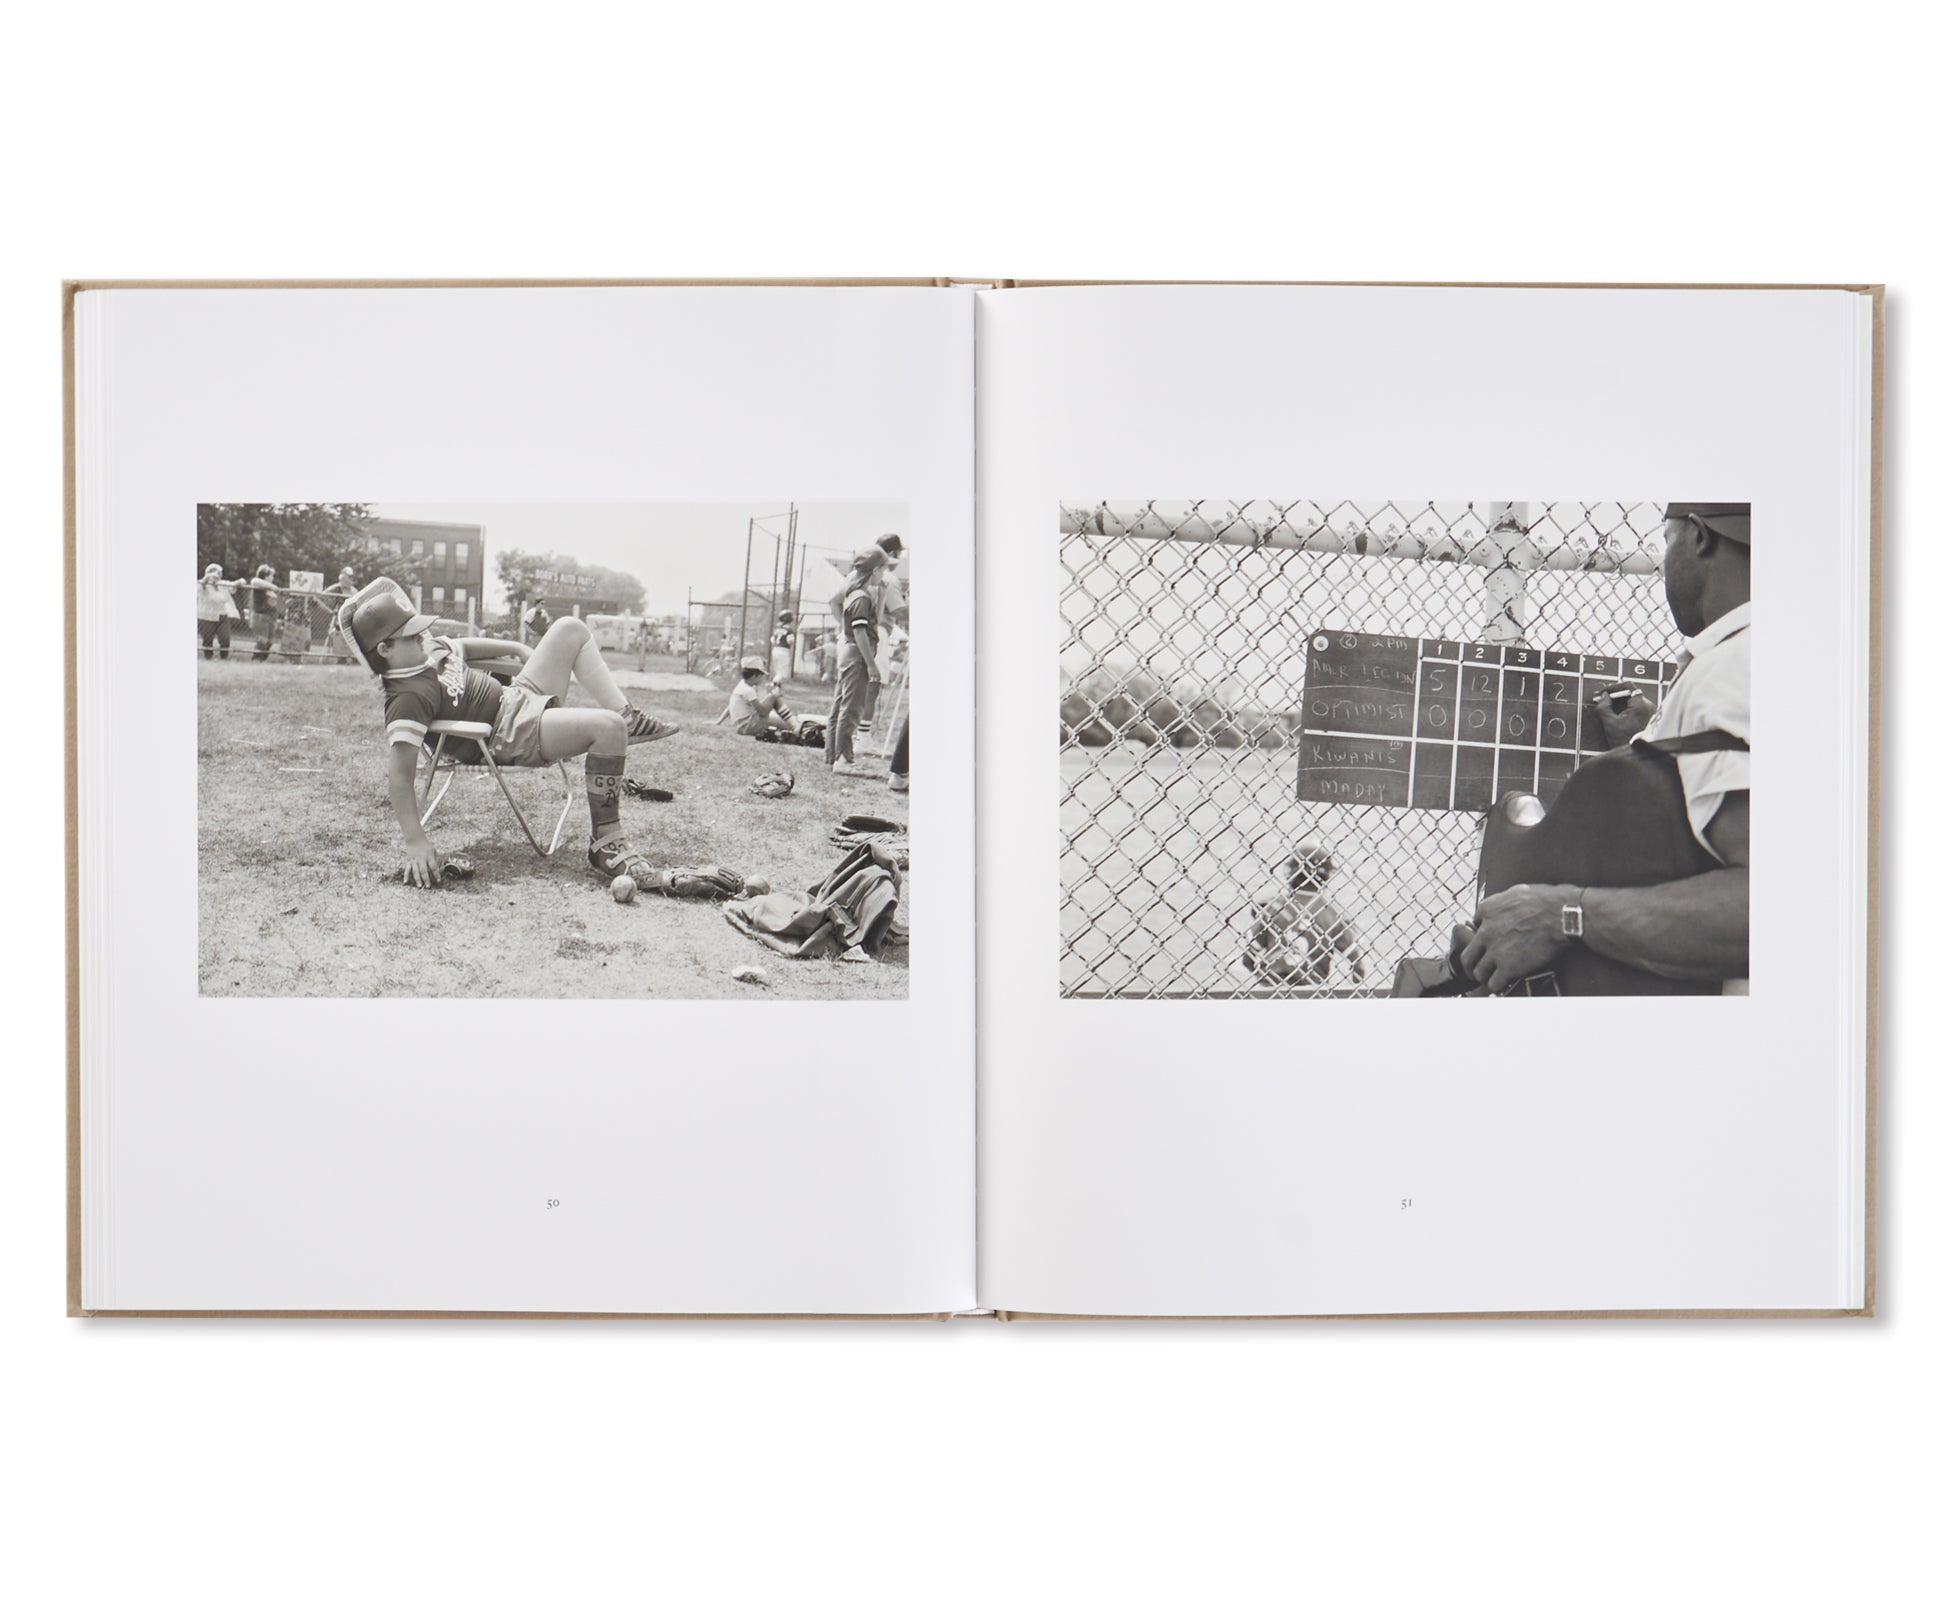 THE PLAYERS by Mark Steinmetz [SIGNED]